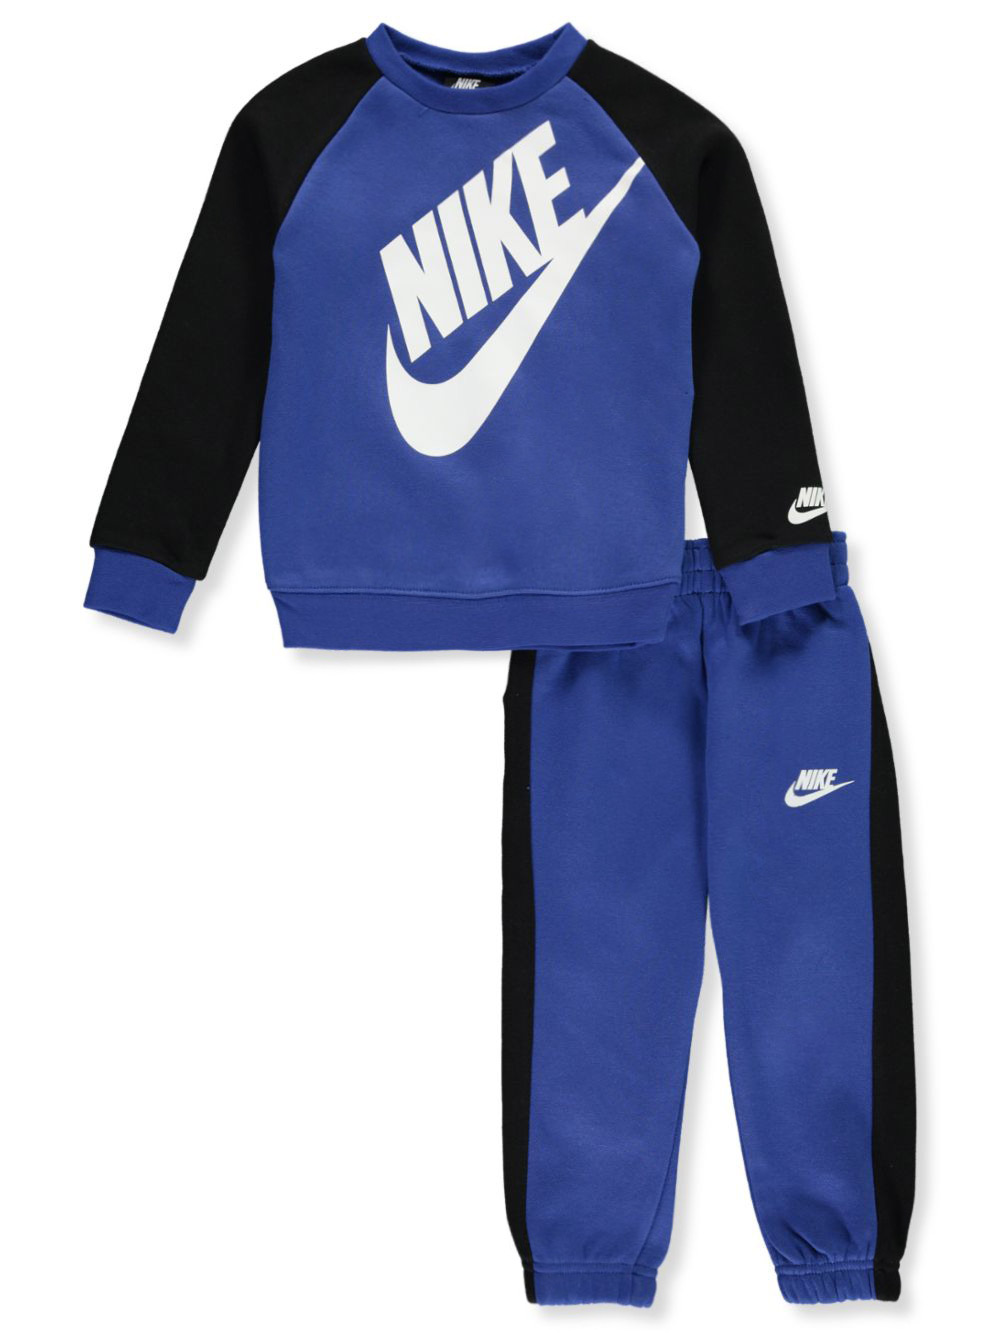 Boys' 2-Piece Sweatsuit Pants Set Outfit